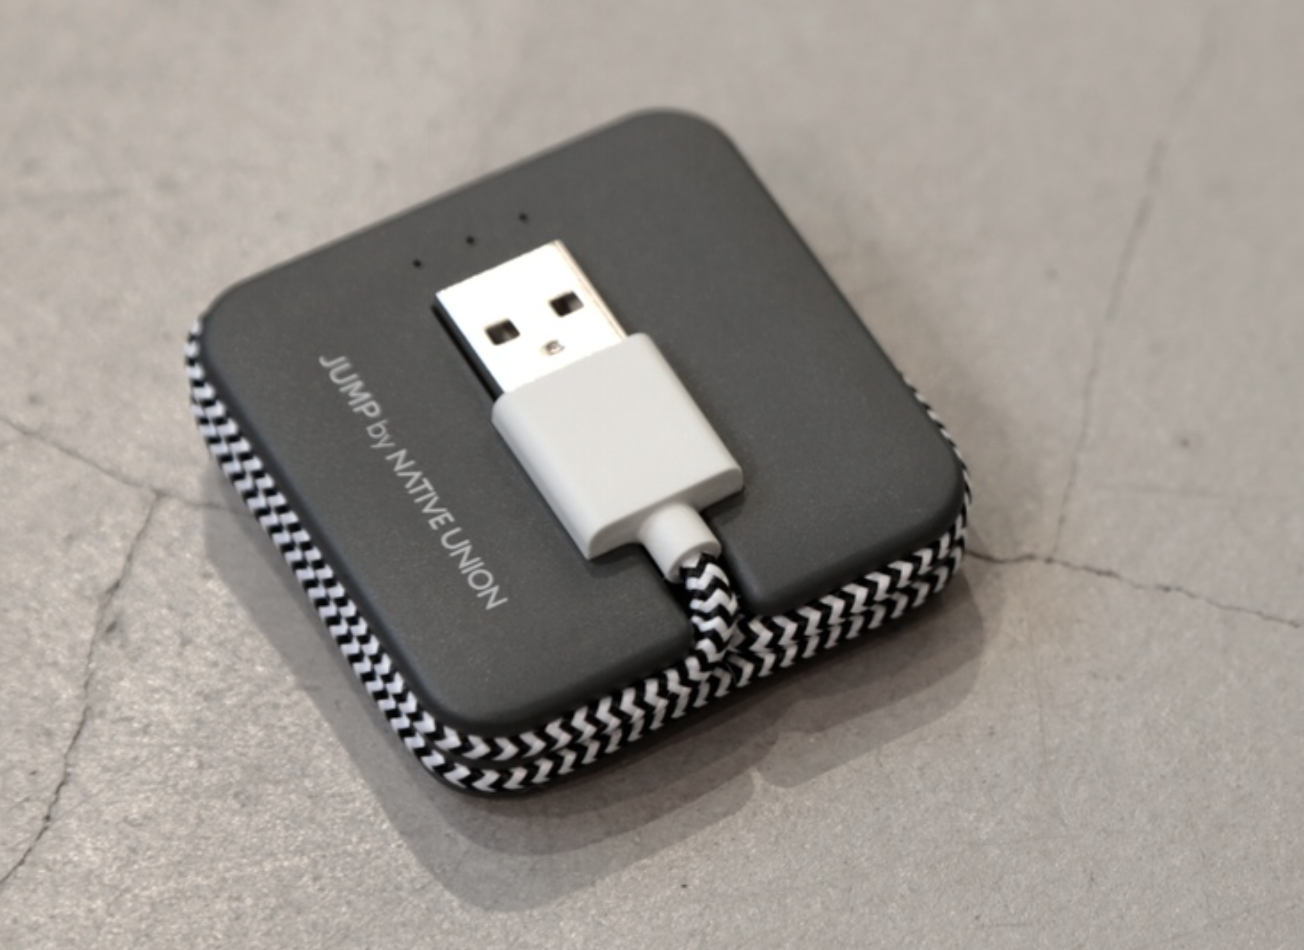 Jump Cable – USB/Thunderbolt Recharger [REVIEW]